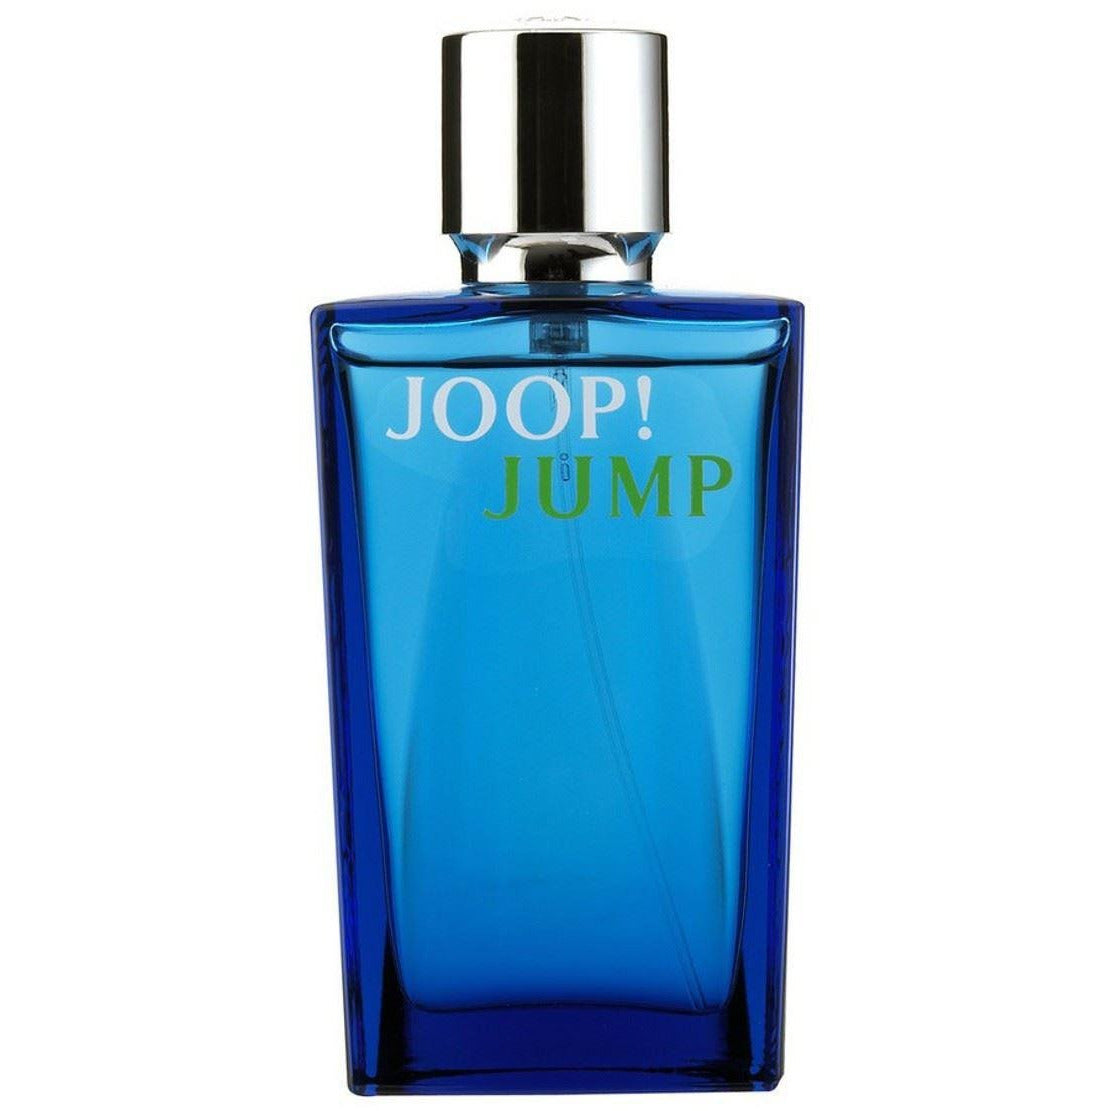 joop-jump-for-men-cologne-3-3-3-4-oz-edt-spray-new-tester